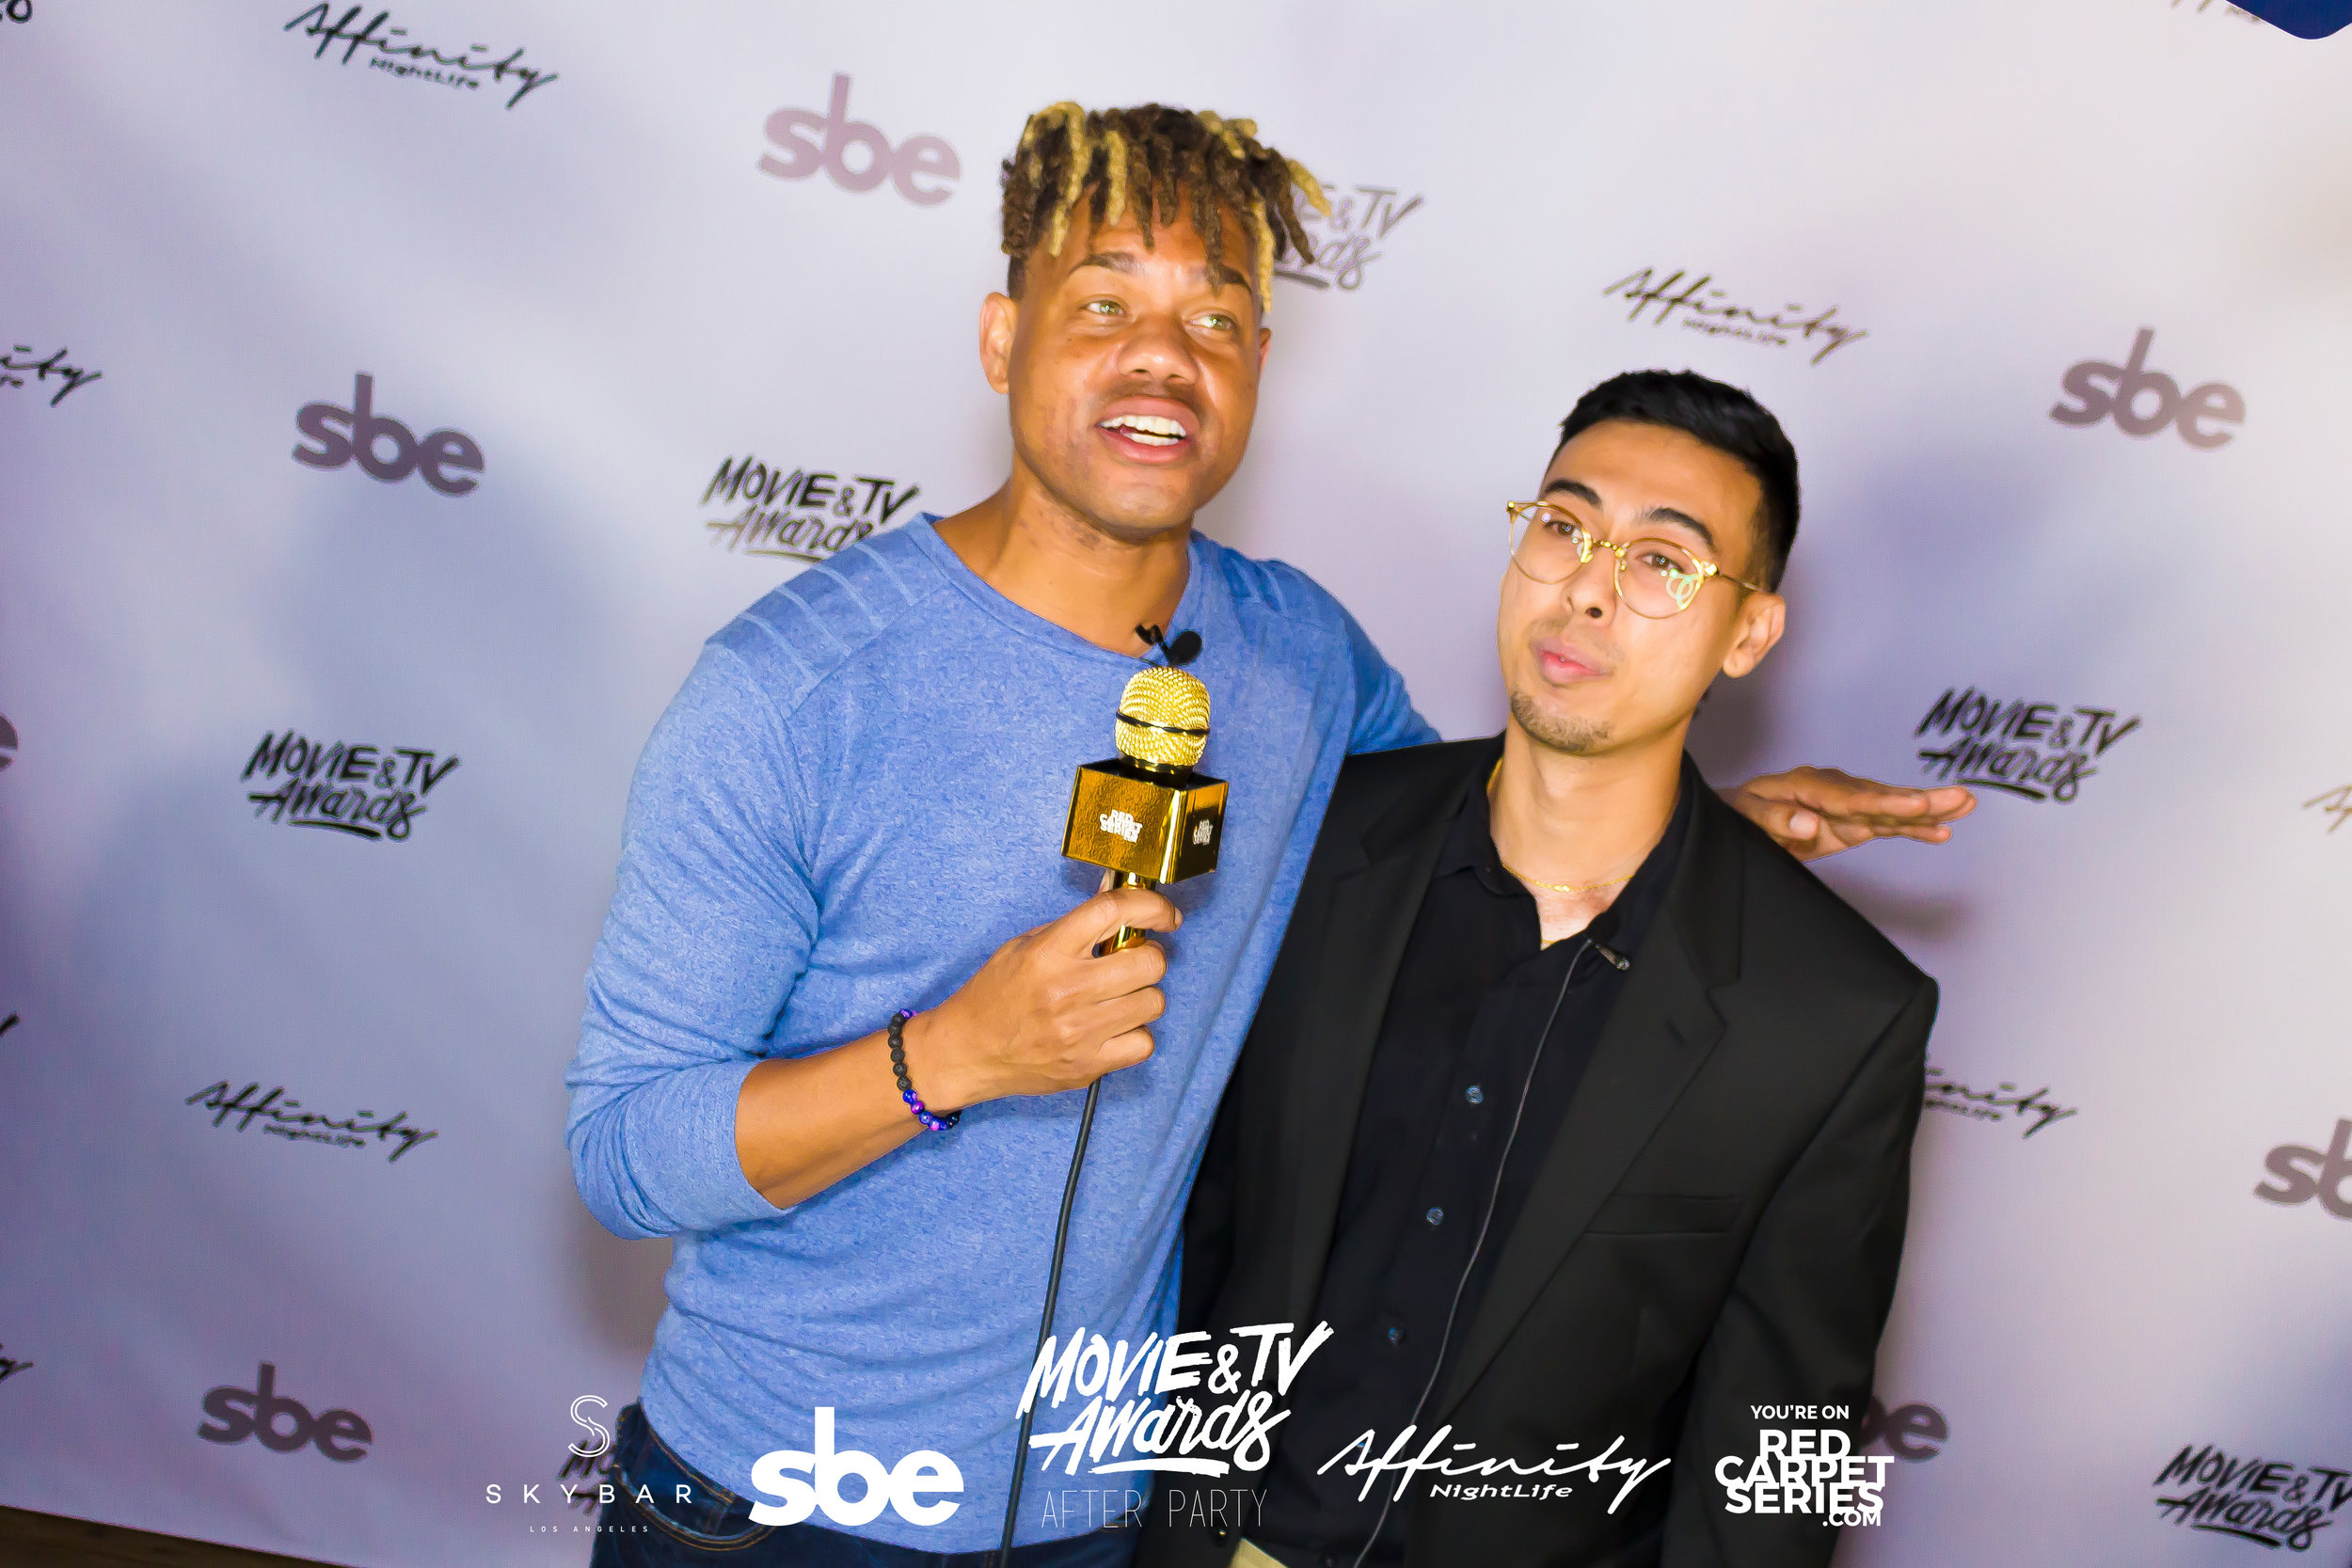 Affinity Nightlife MTV Movie & TV Awards After Party - Skybar at Mondrian - 06-15-19 - Vol. 1_78.jpg